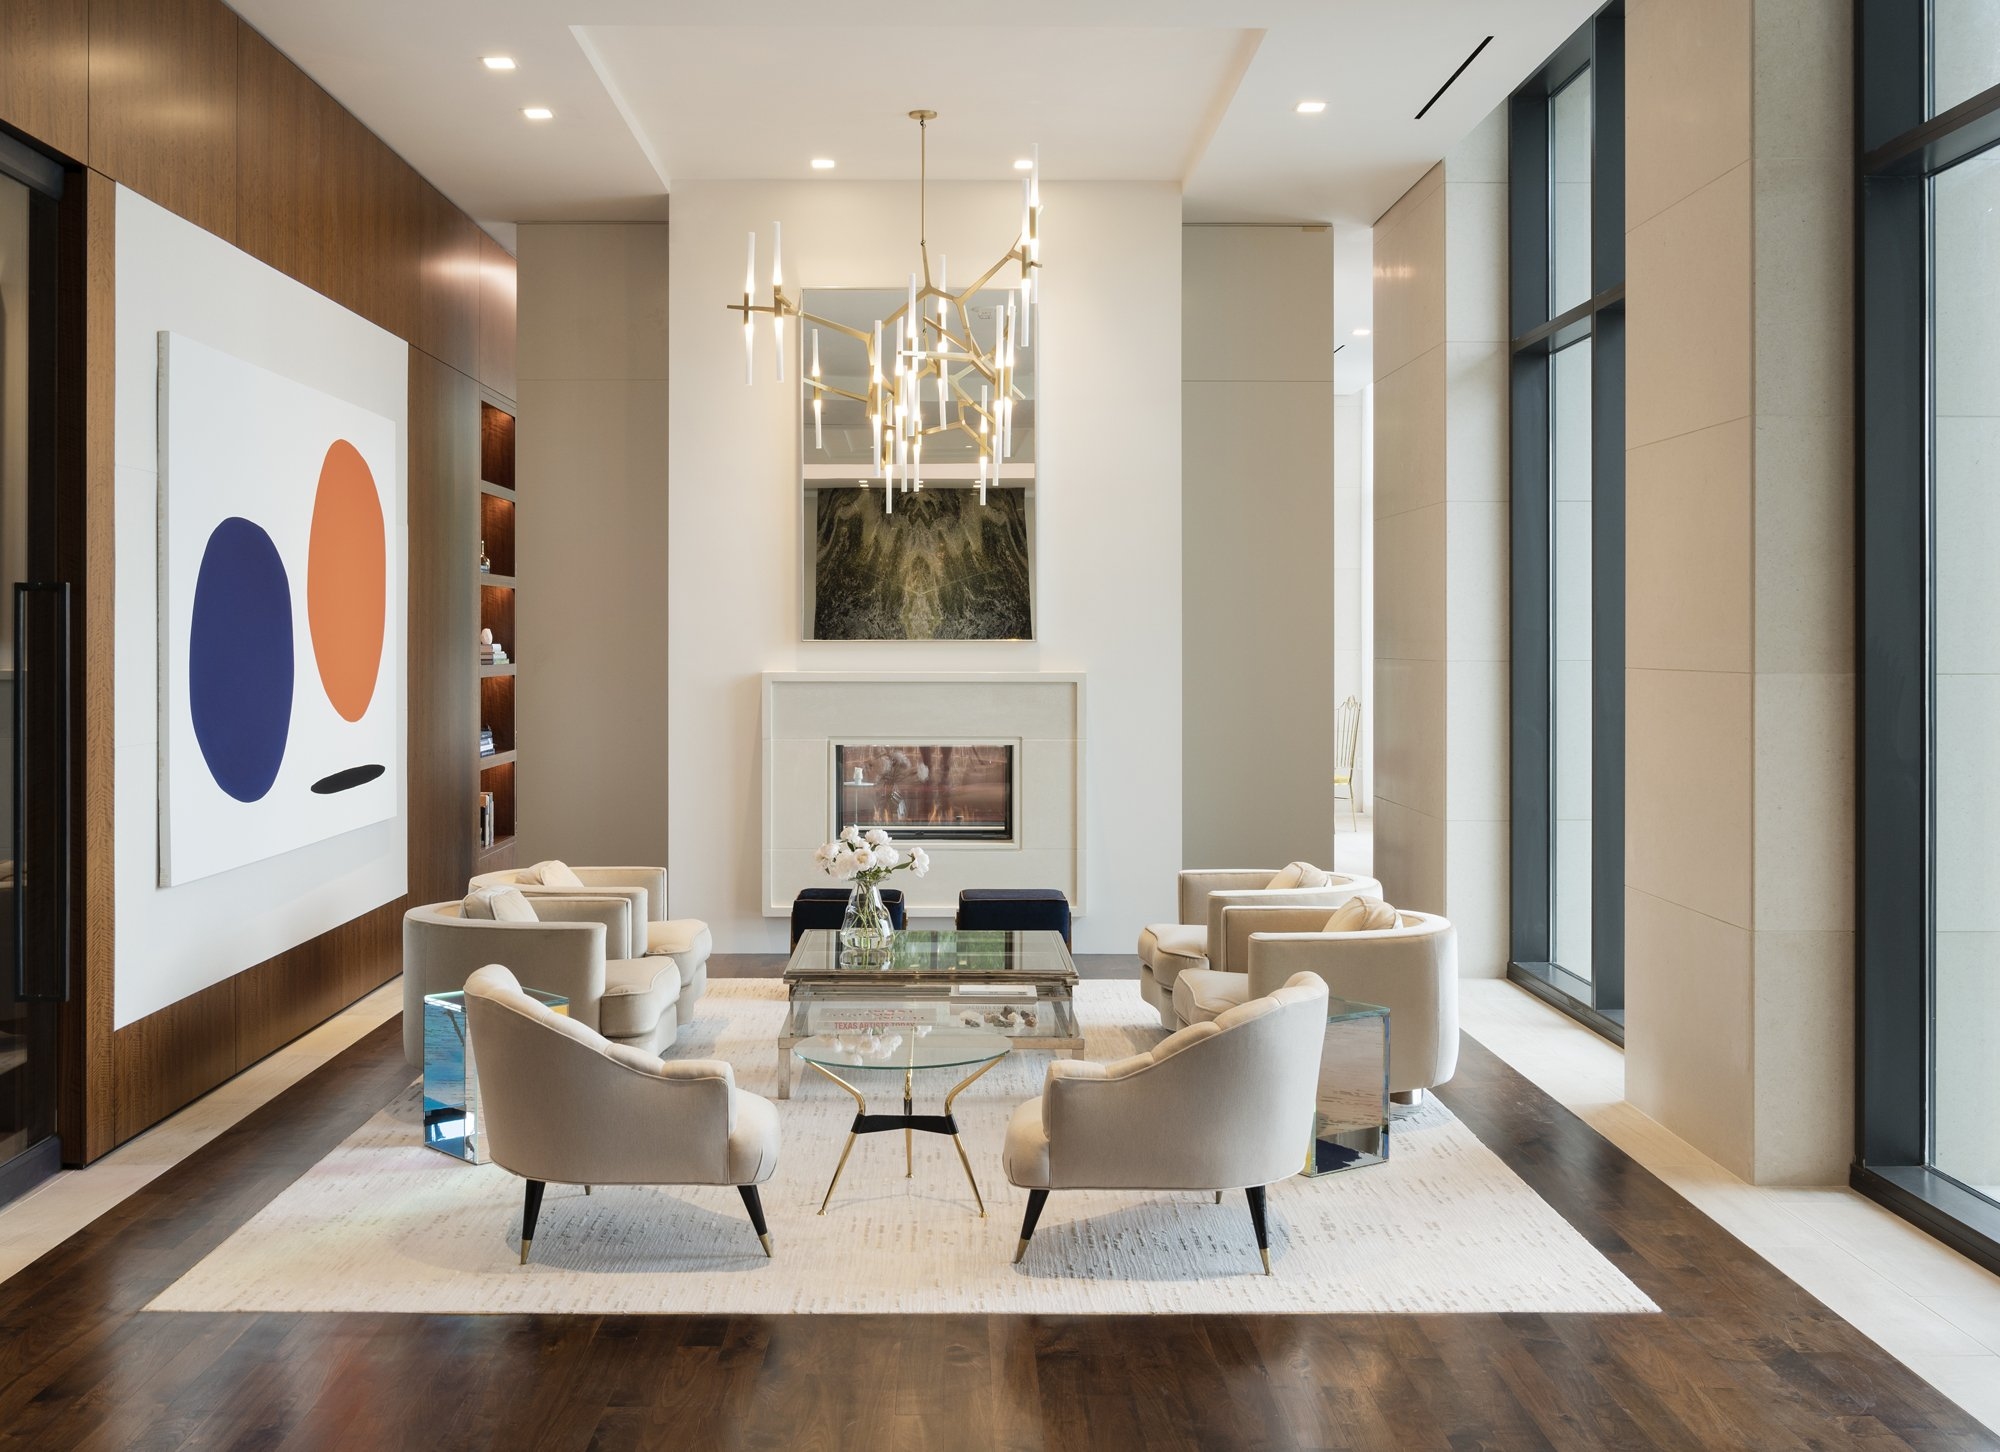 Superb Rottetu0027s Latest Project Includes Interiors For River Oaks, A 19 Story  High Rise Residence Located In Houston And Originally Built In The 1960s.